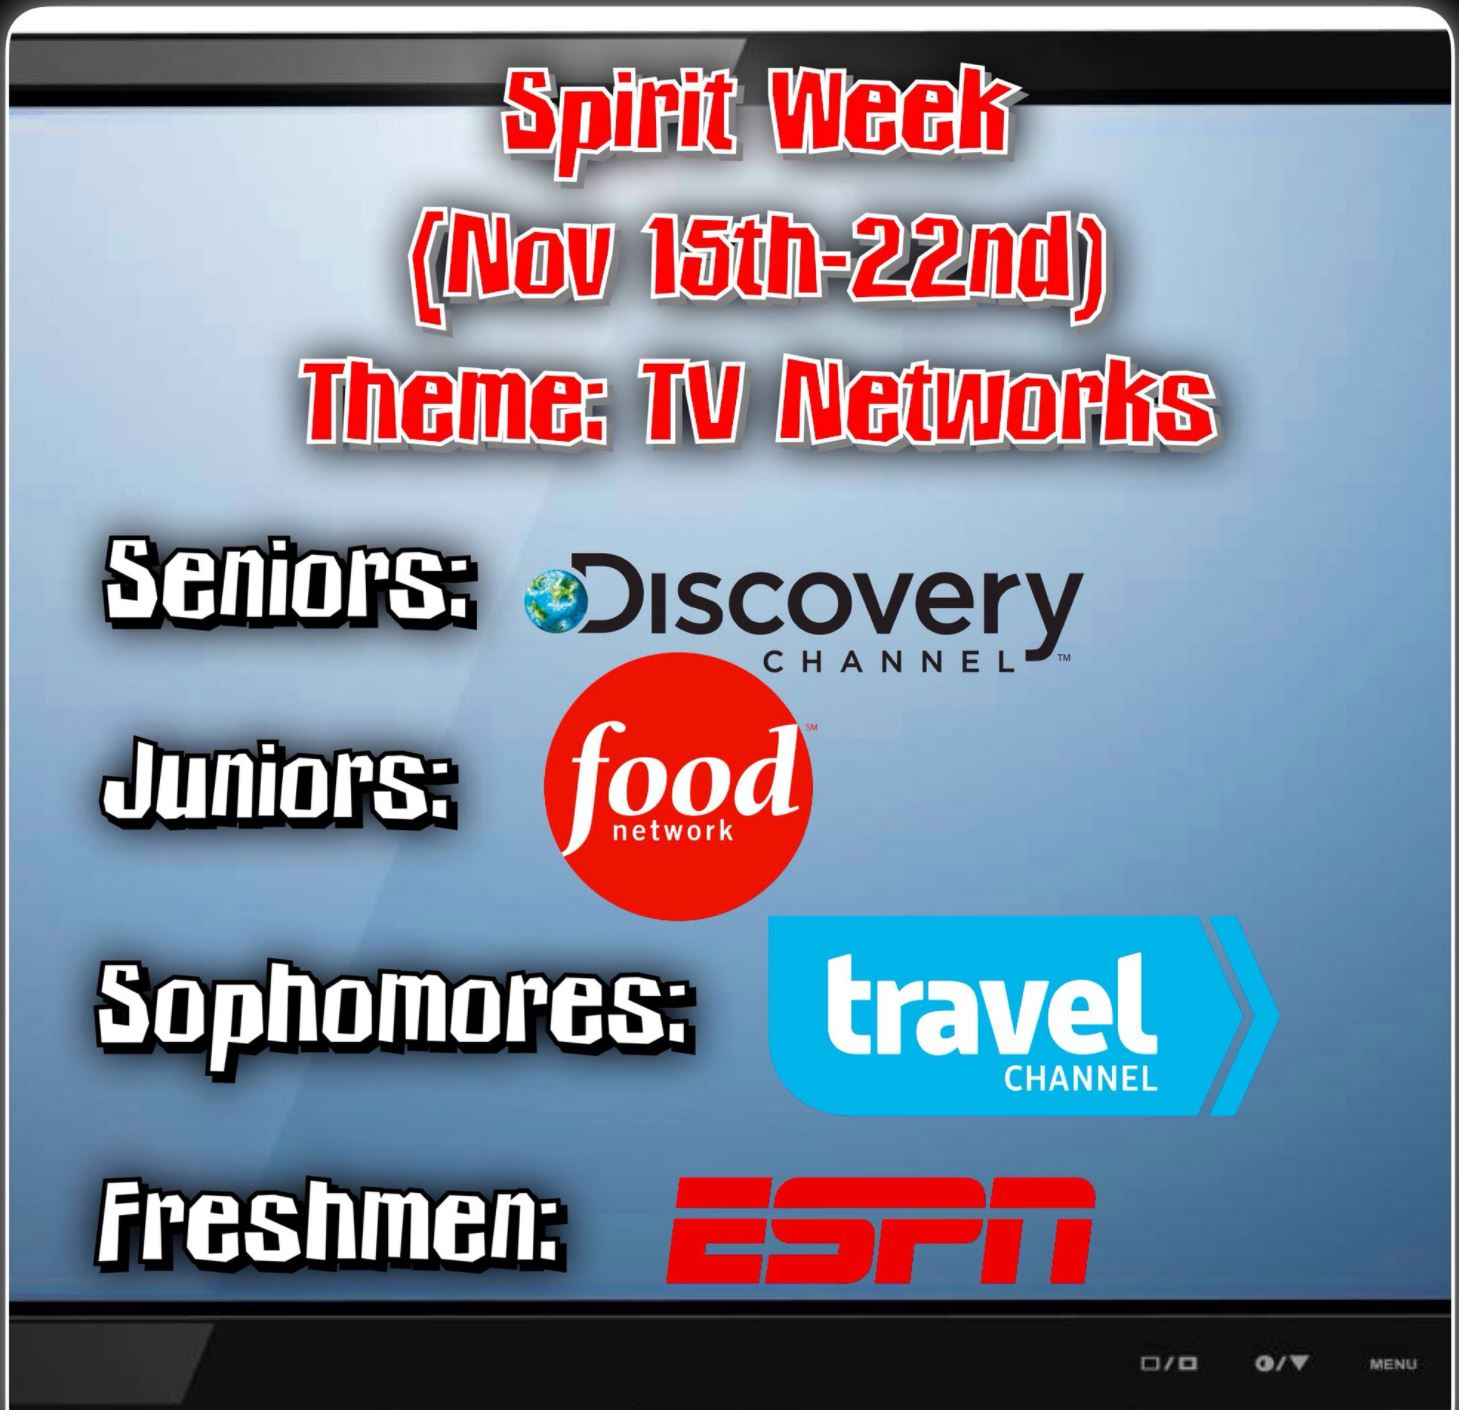 Spirit Week is an exciting time for the freshmen class.